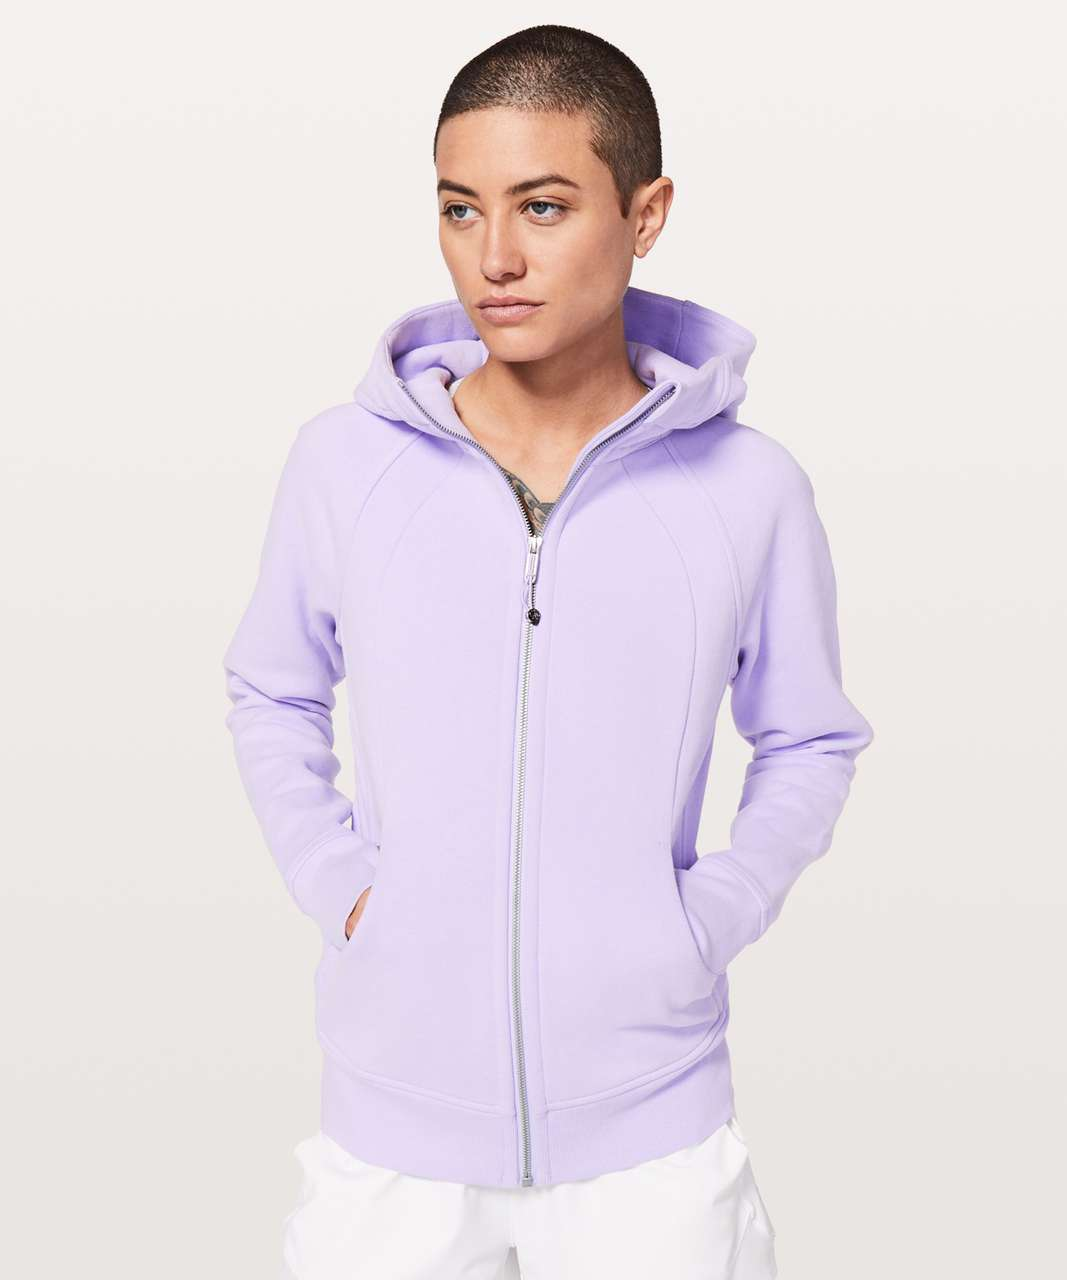 Lululemon Scuba Hoodie *Light Cotton Fleece - Sheer Violet (First Release)